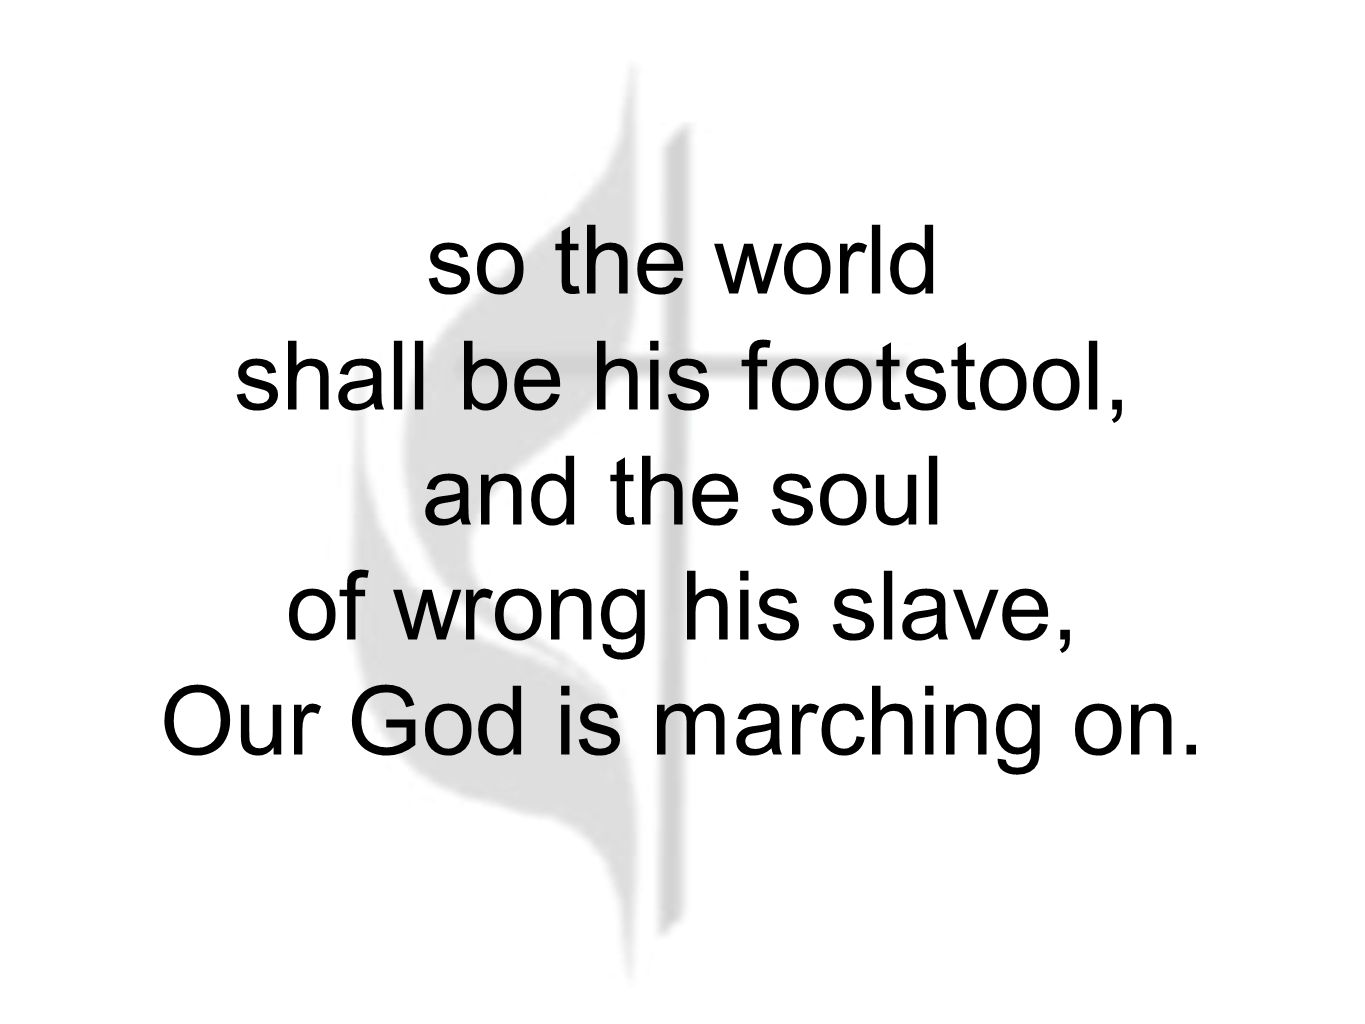 so the world shall be his footstool, and the soul of wrong his slave, Our God is marching on.